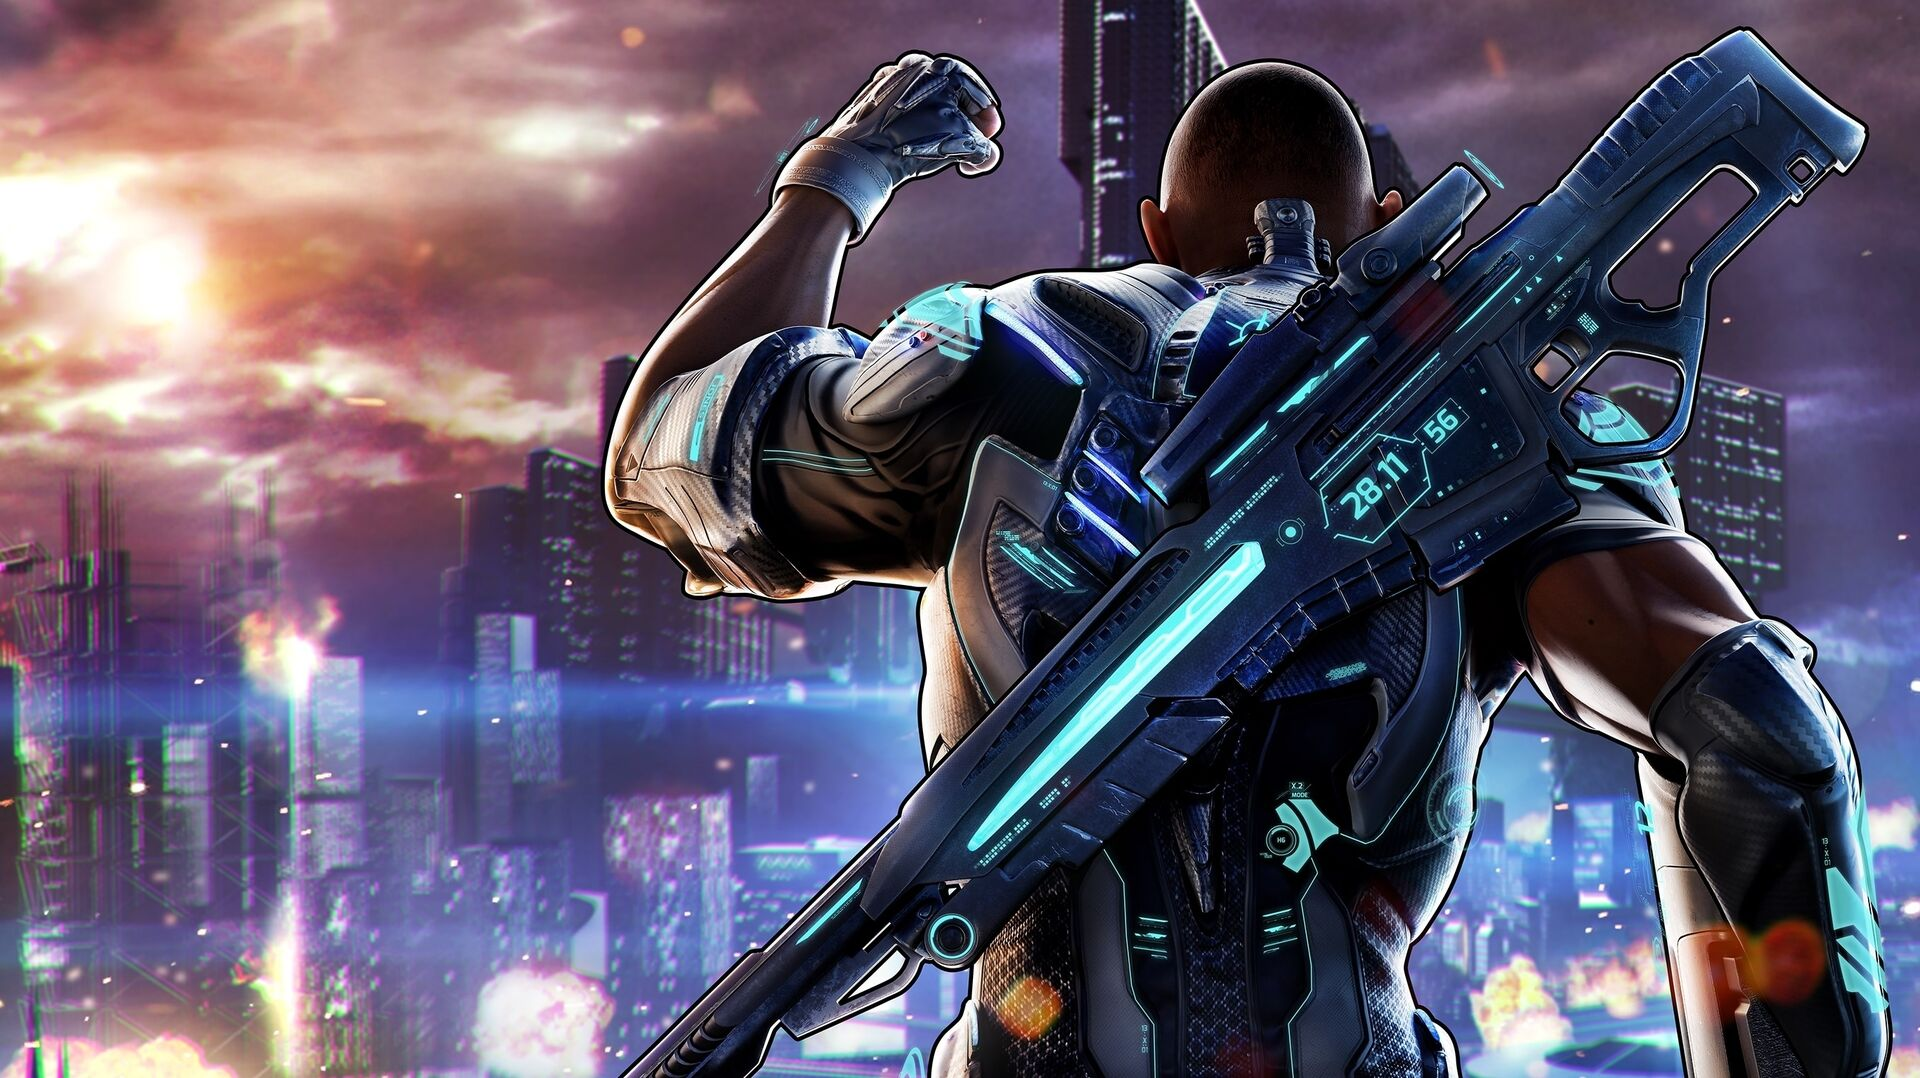 Crackdown 3 tech analysis: a console classic reborn